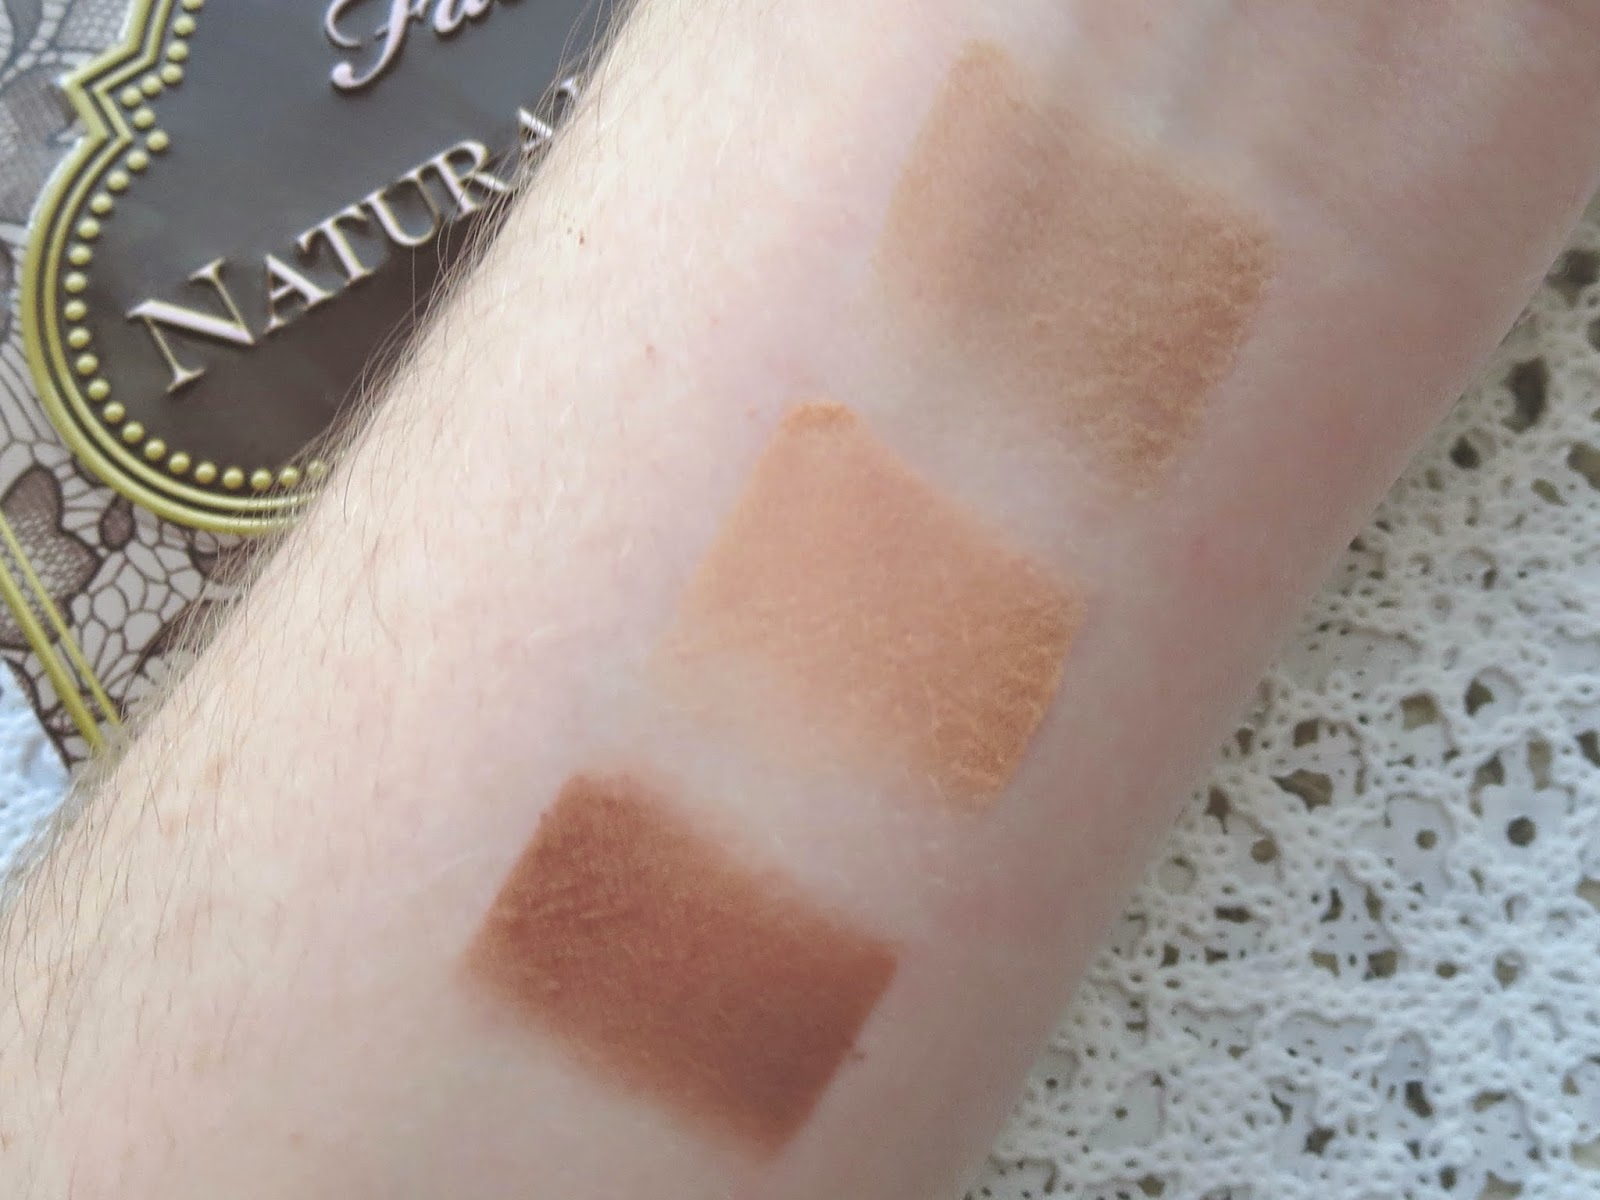 a picture of Too Faced Natural Matte palette swatch; Chocolate Cookie, Honey Butter, Nudie